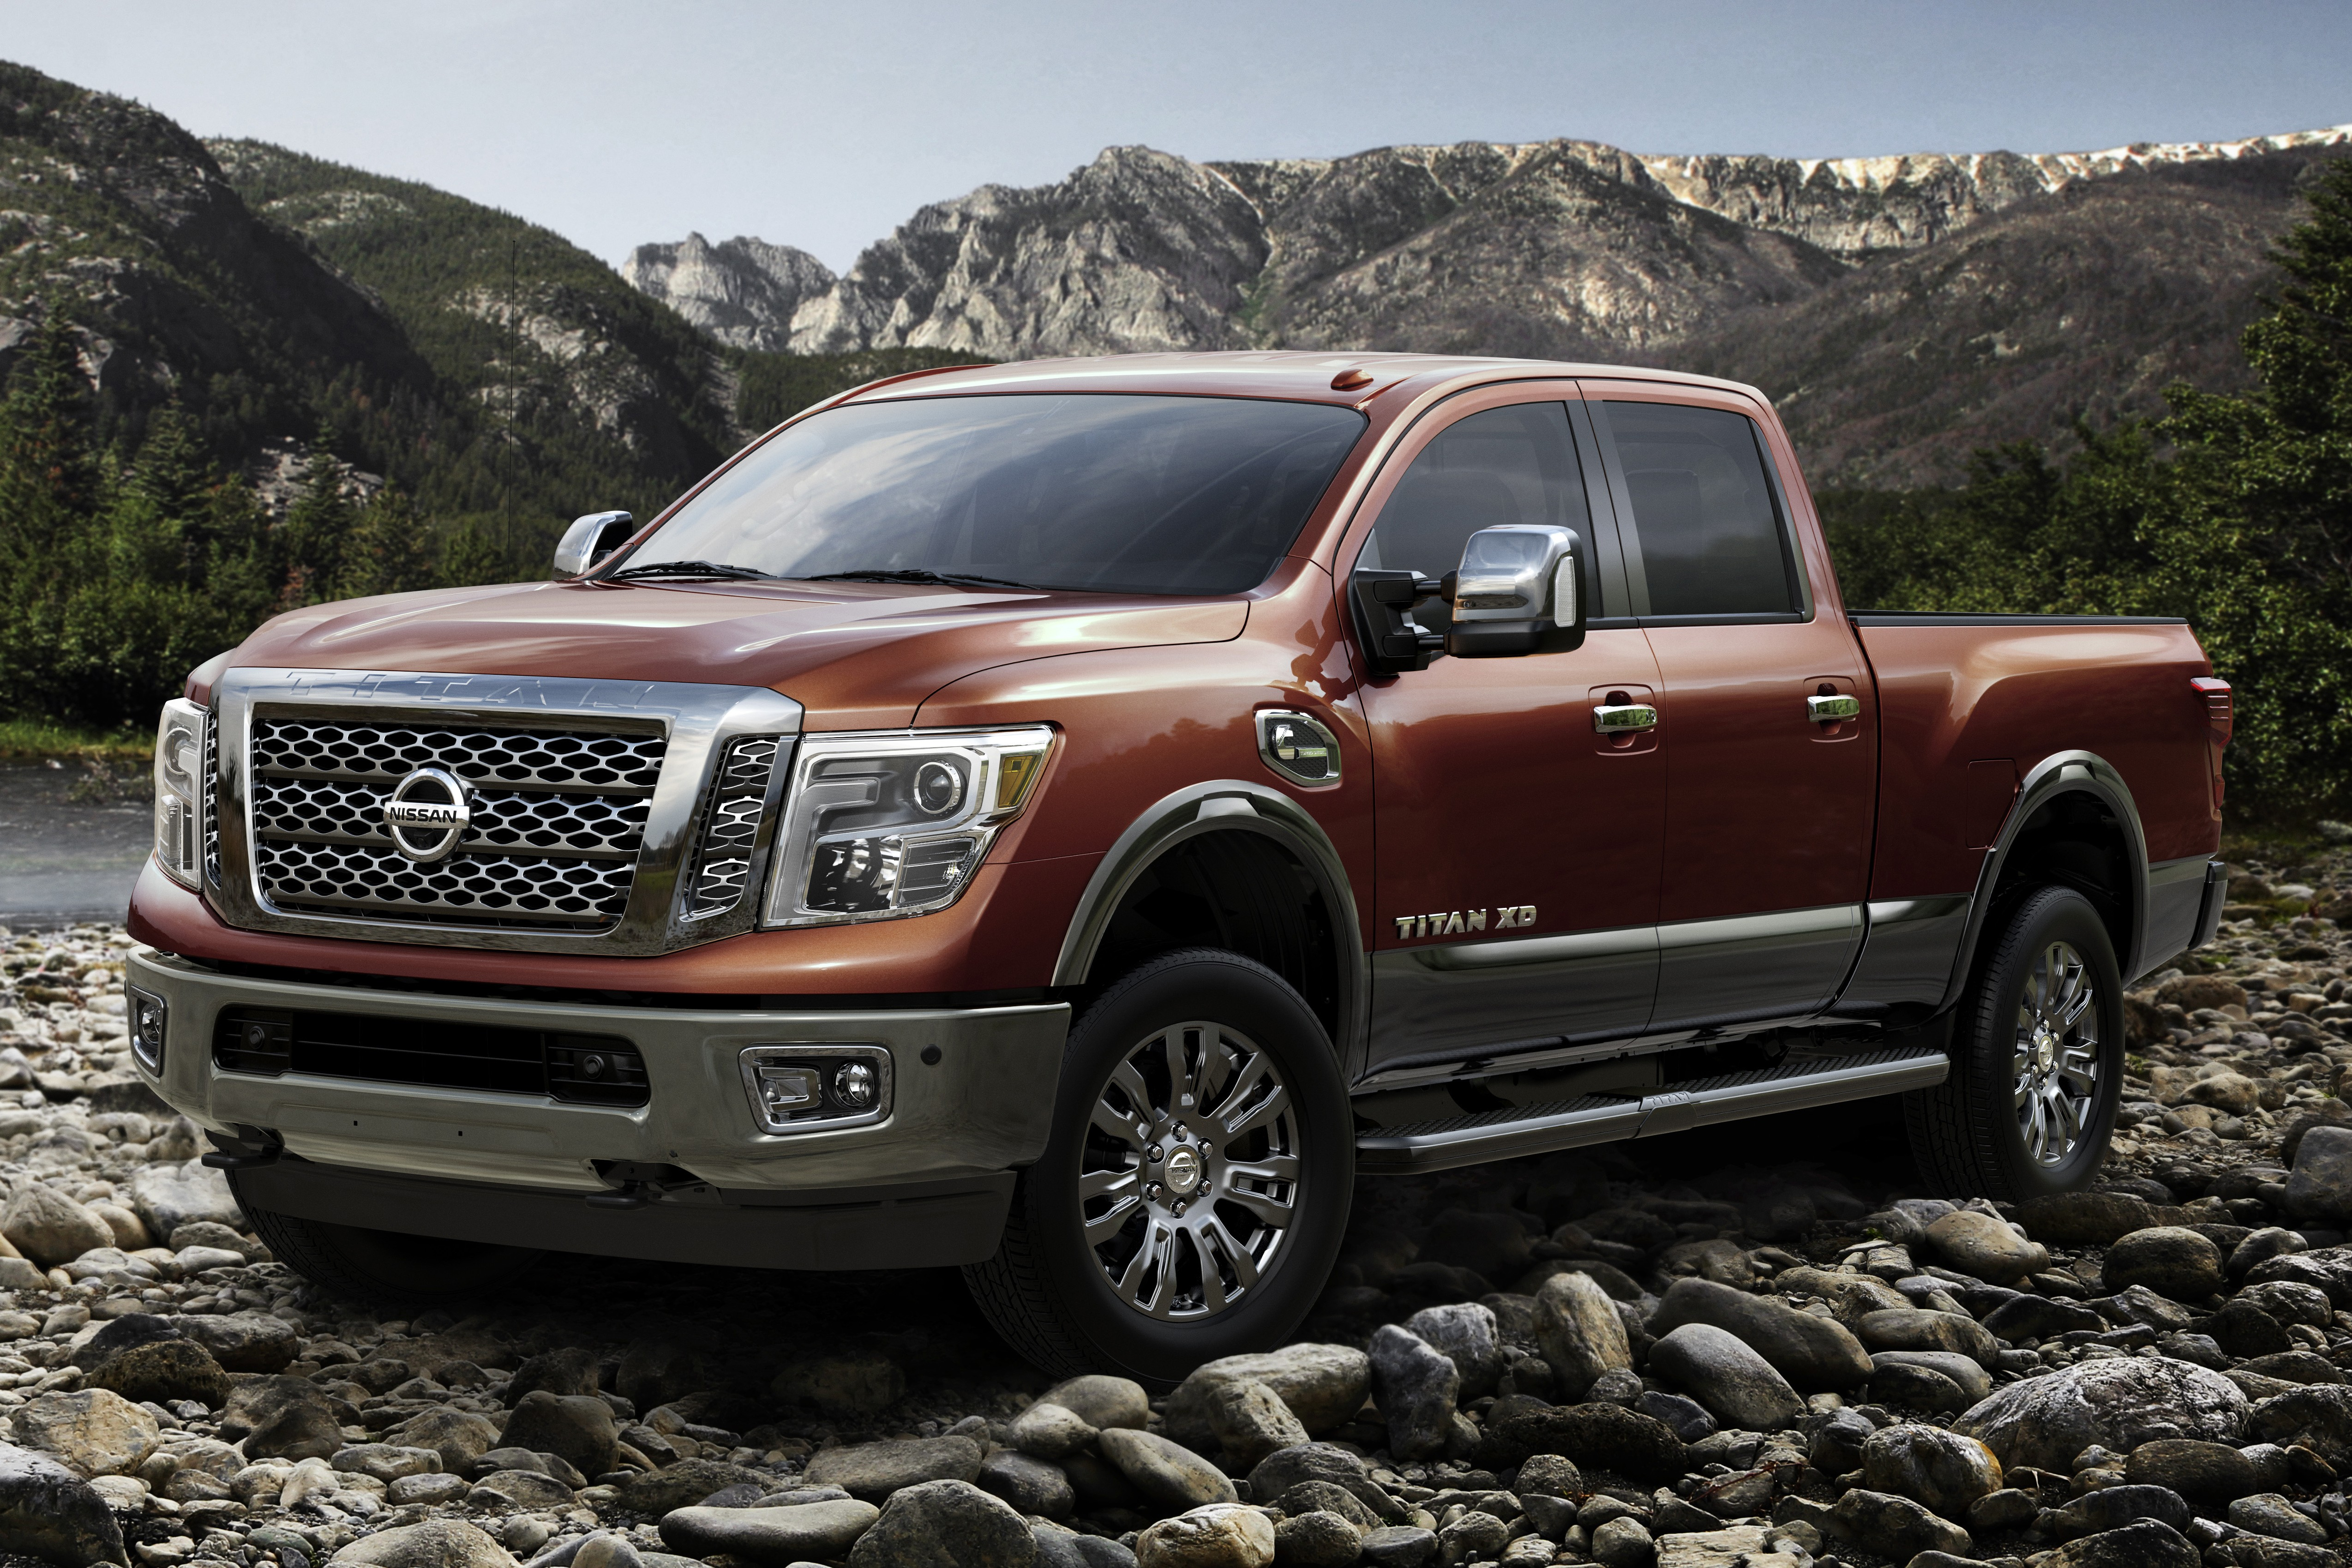 Nissan Titan XD shown – 752 Nm from 5.0 diesel V8 Image 303929